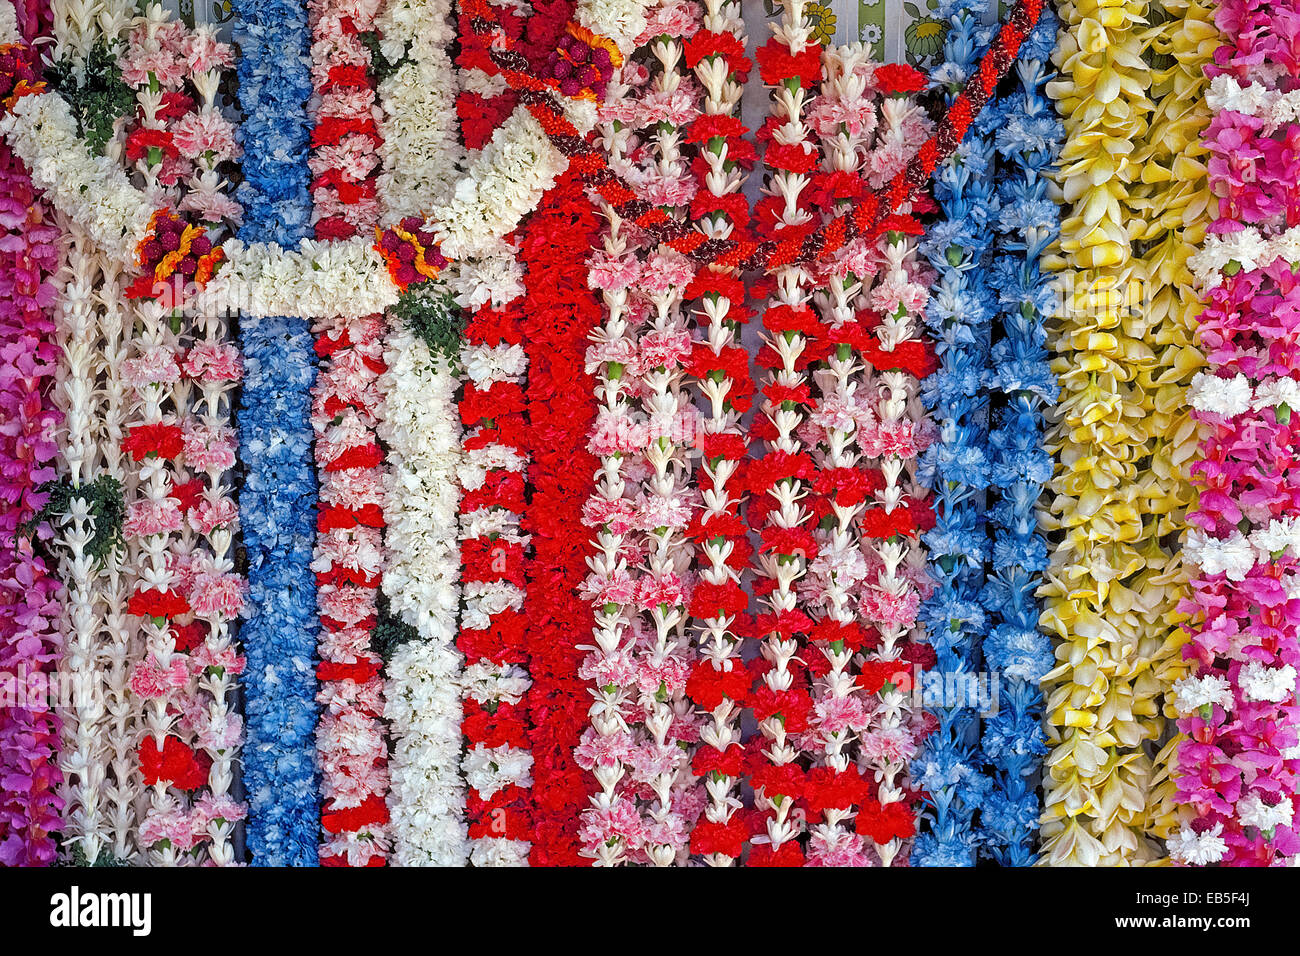 Strings of flower leis to say 'Aloha' (hello or good-bye) are for sale in lei-maker stalls at Honolulu International - Stock Image